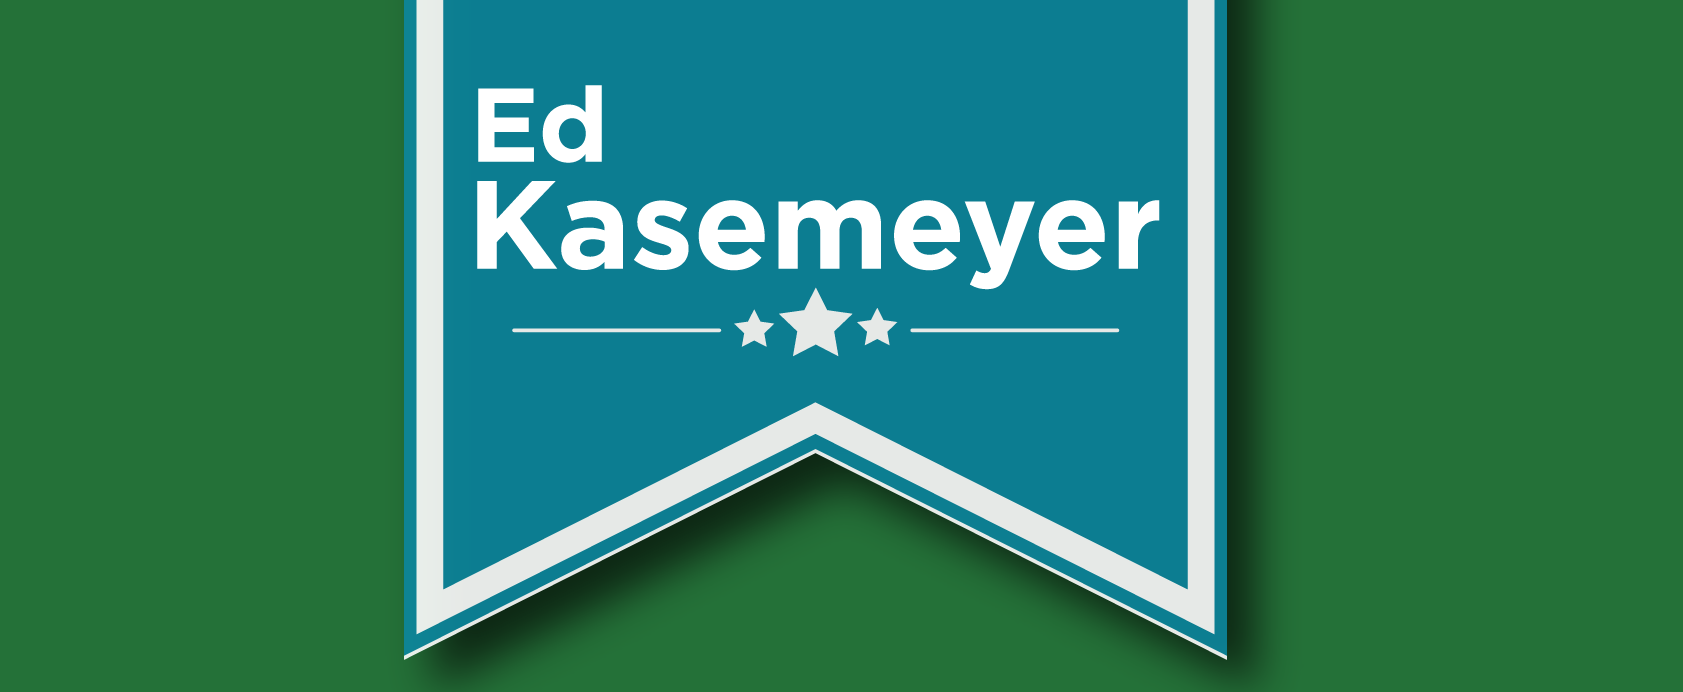 Ed Kasemeyer For Senate